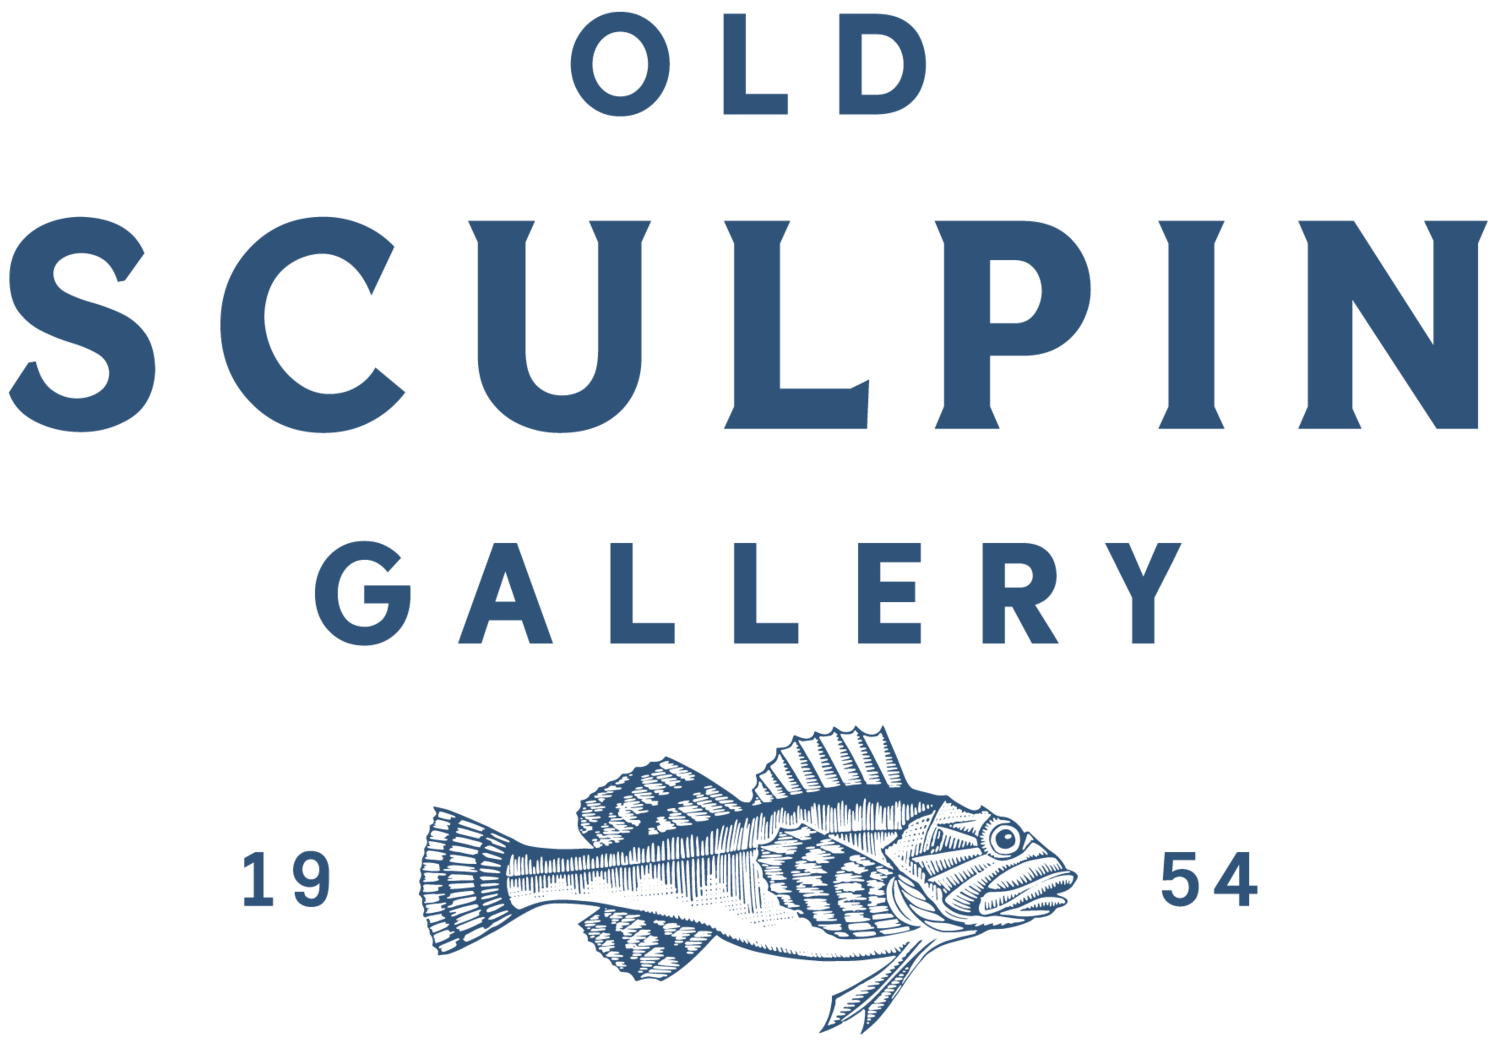 Martha's Vineyard Art Association & Old Sculpin Gallery